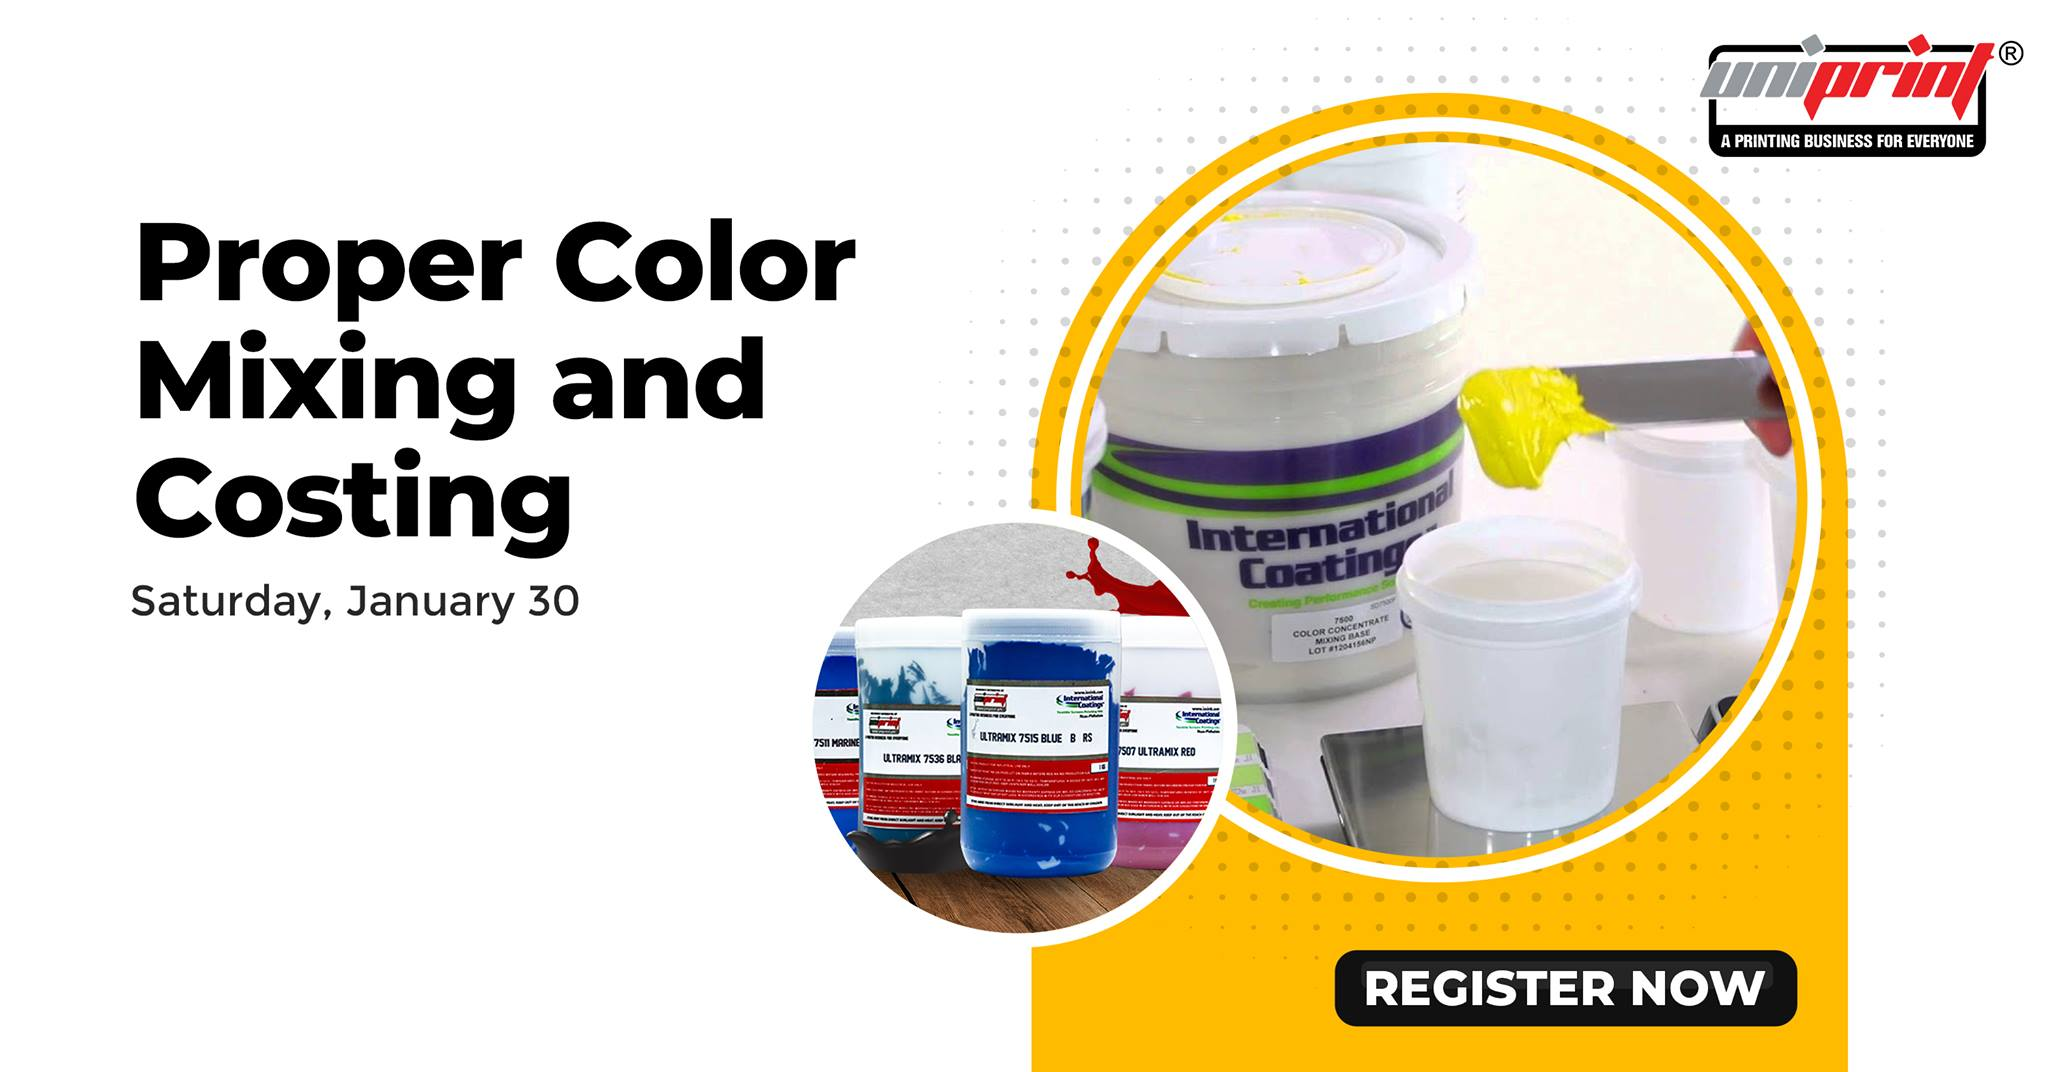 Proper Color Mixing and Costing